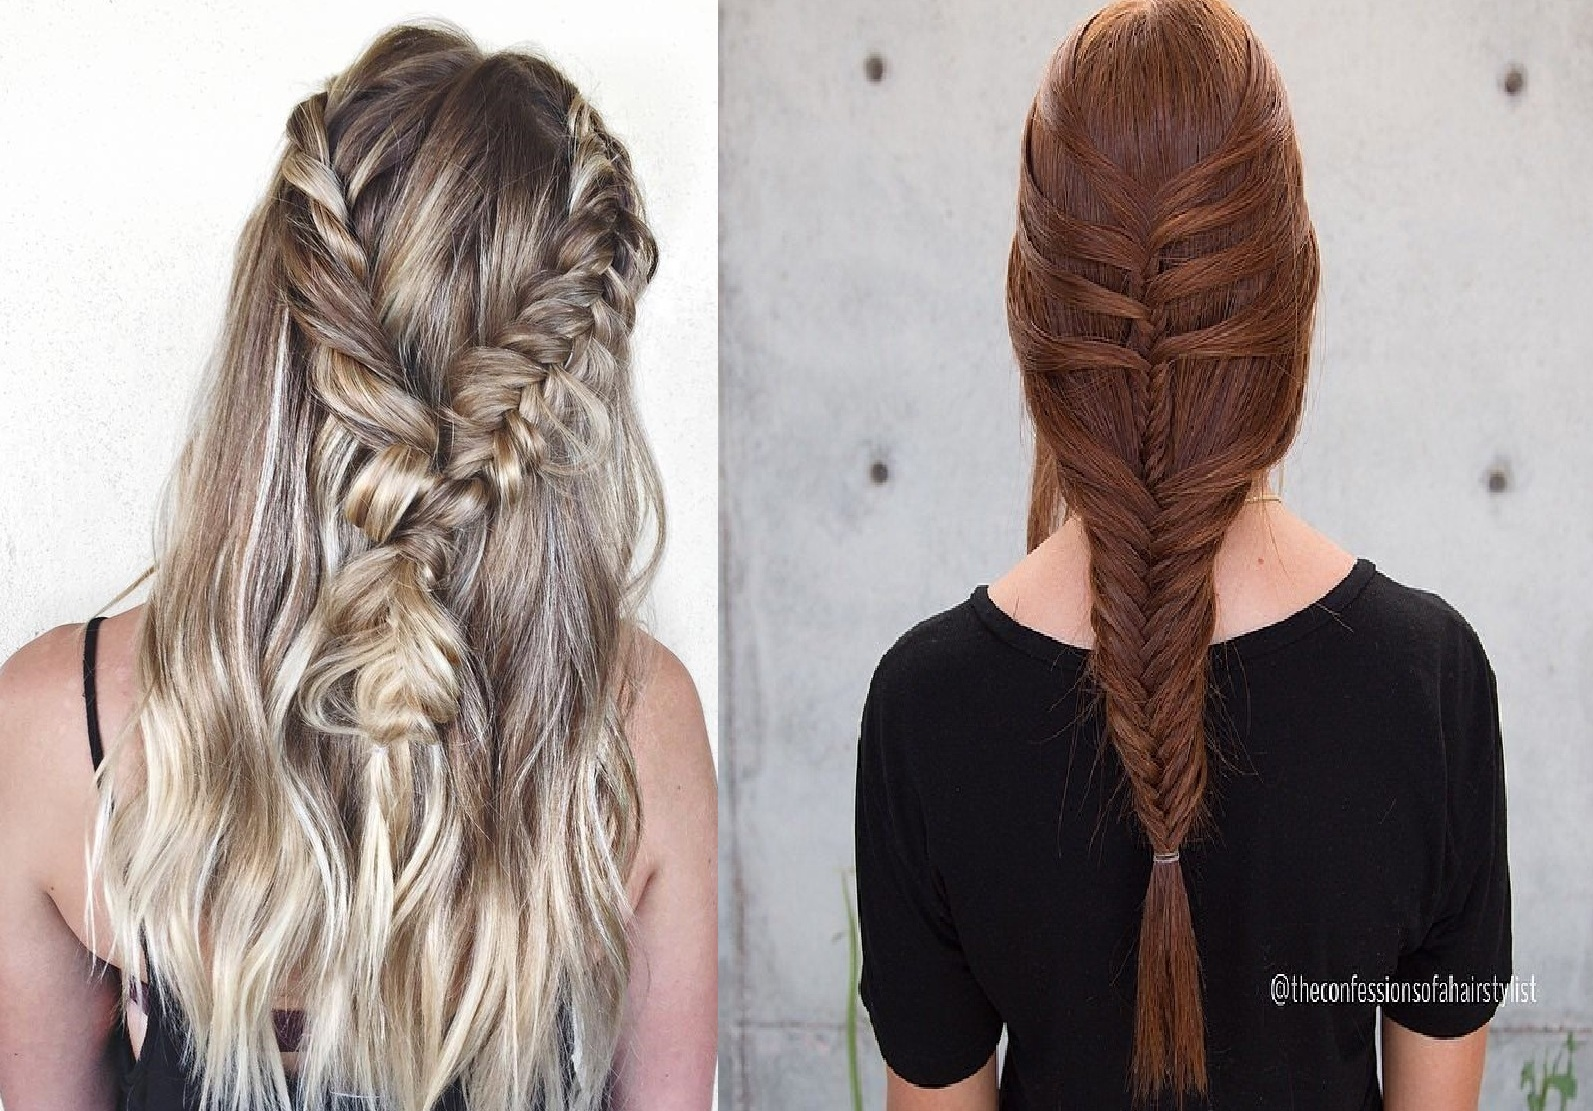 Beautiful hairstyles with braid trend summer New: inspire yourself Hairstyles with Braids